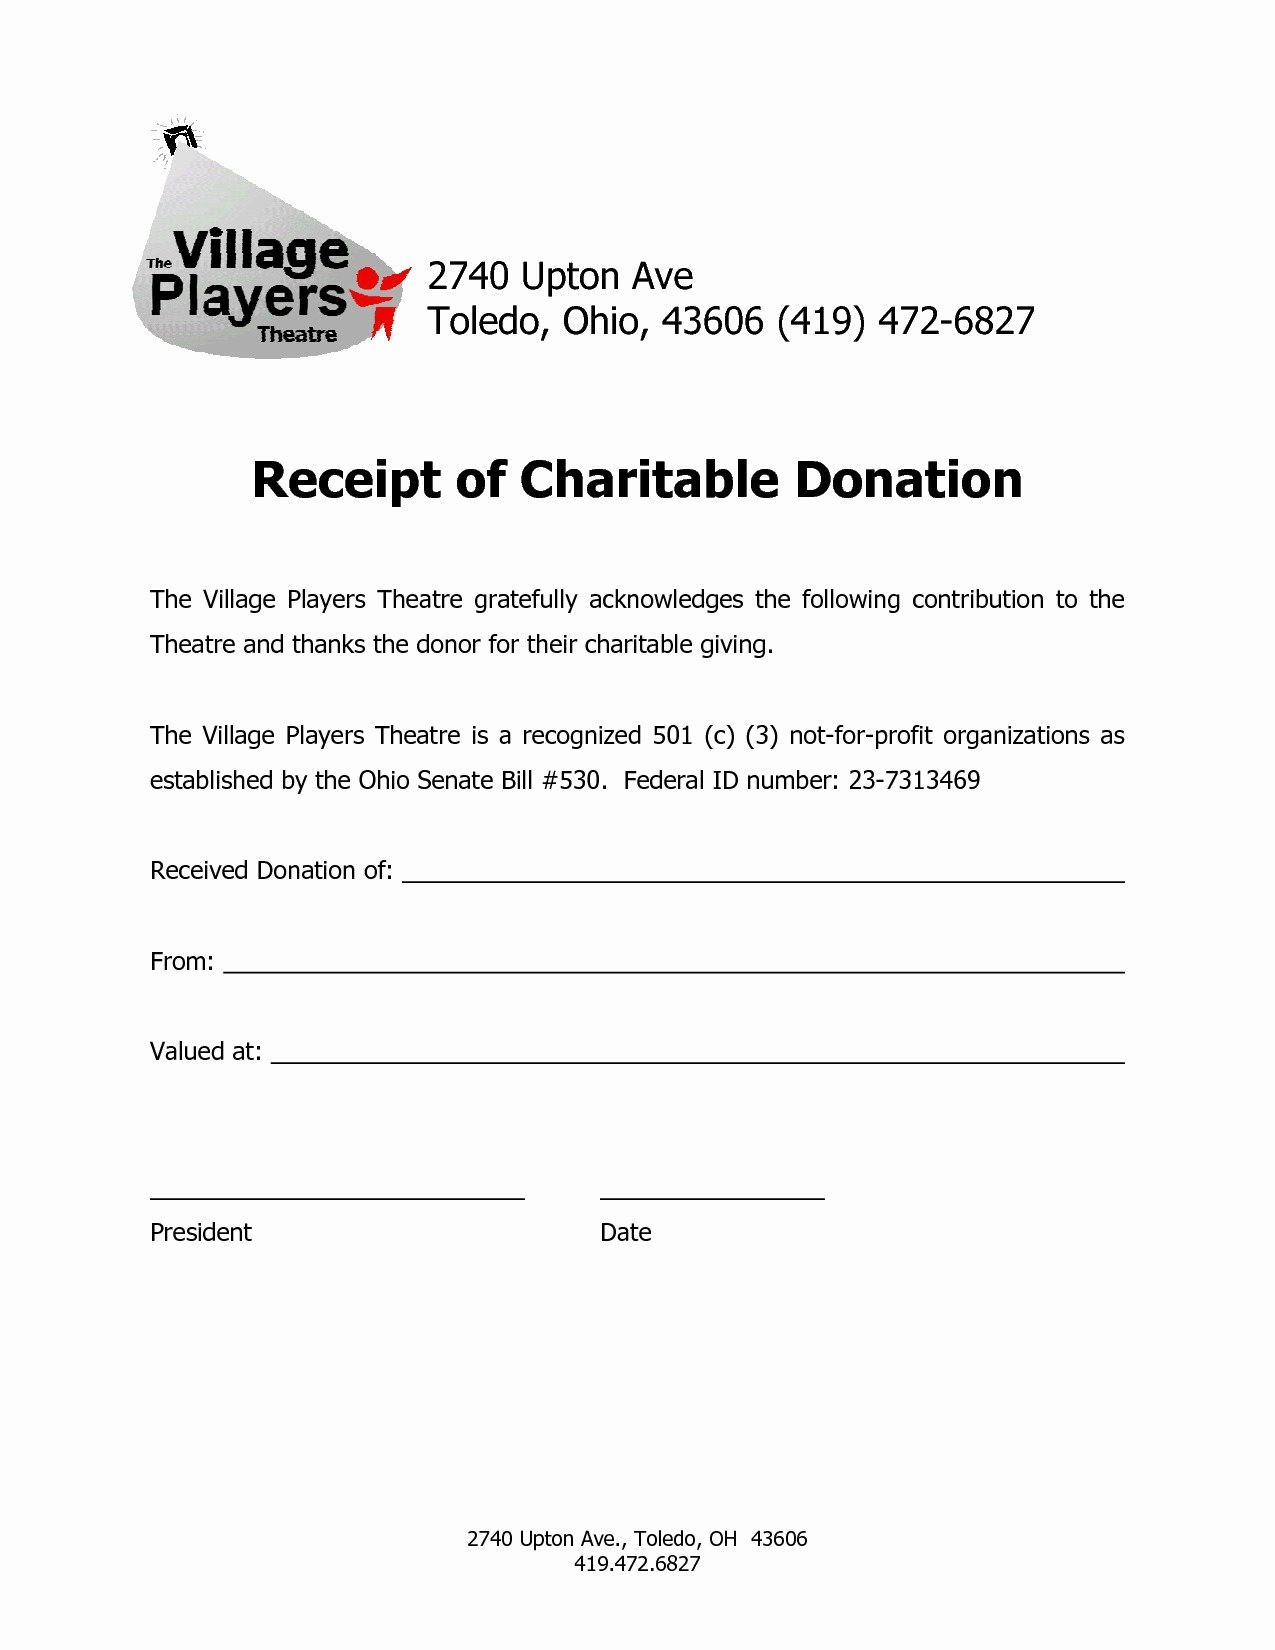 Non Profit Donation Letter Template Unique Non Profit Tax Deduction Letter Template Collection